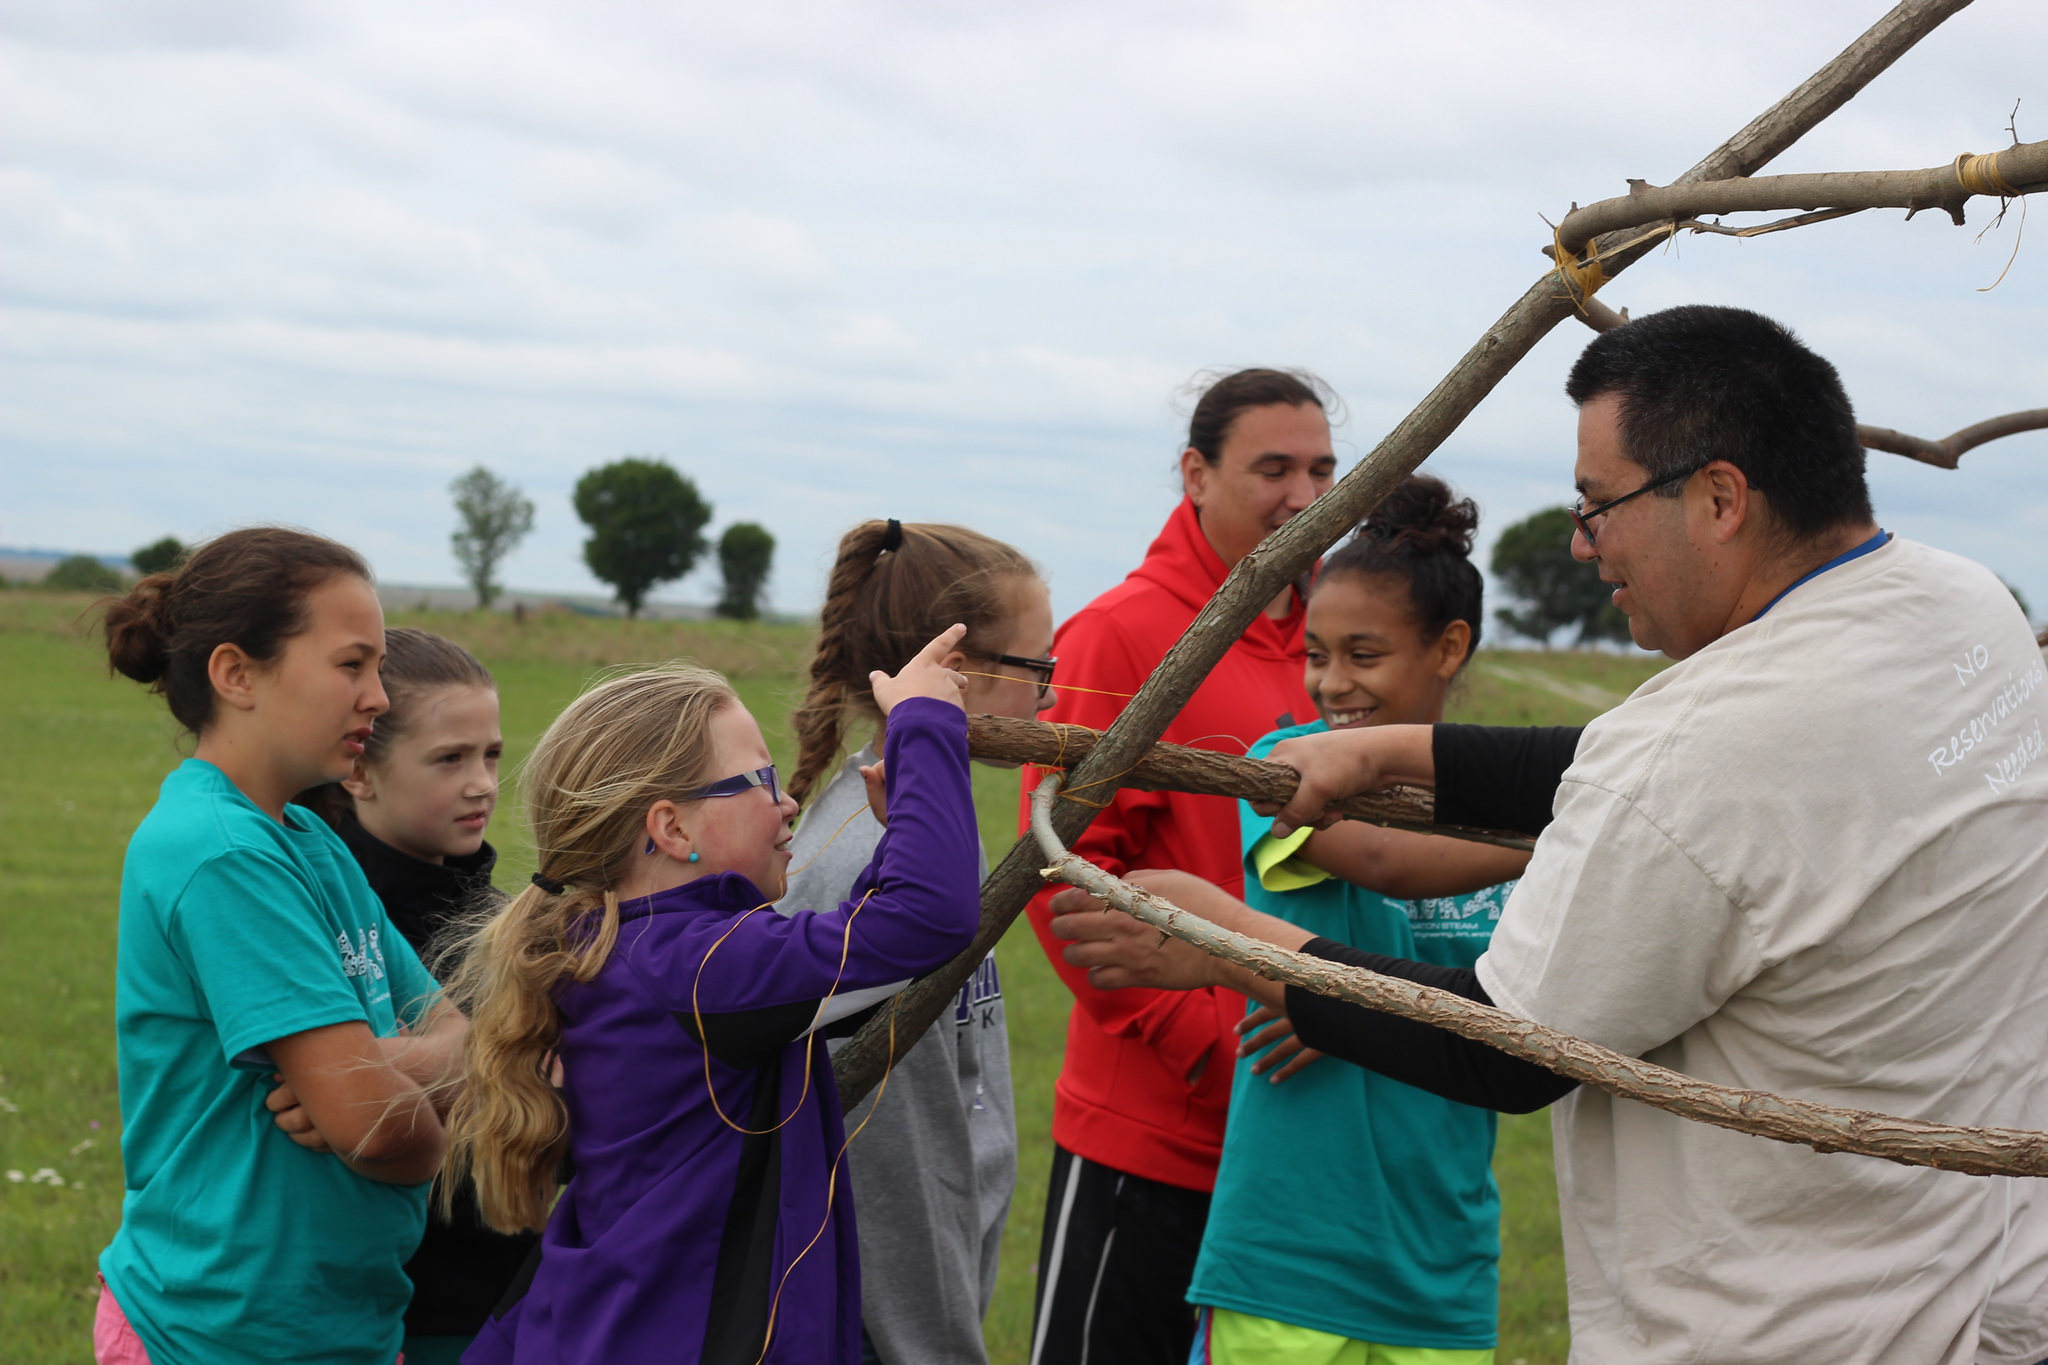 Osage youth learn about Ecology during summer camp